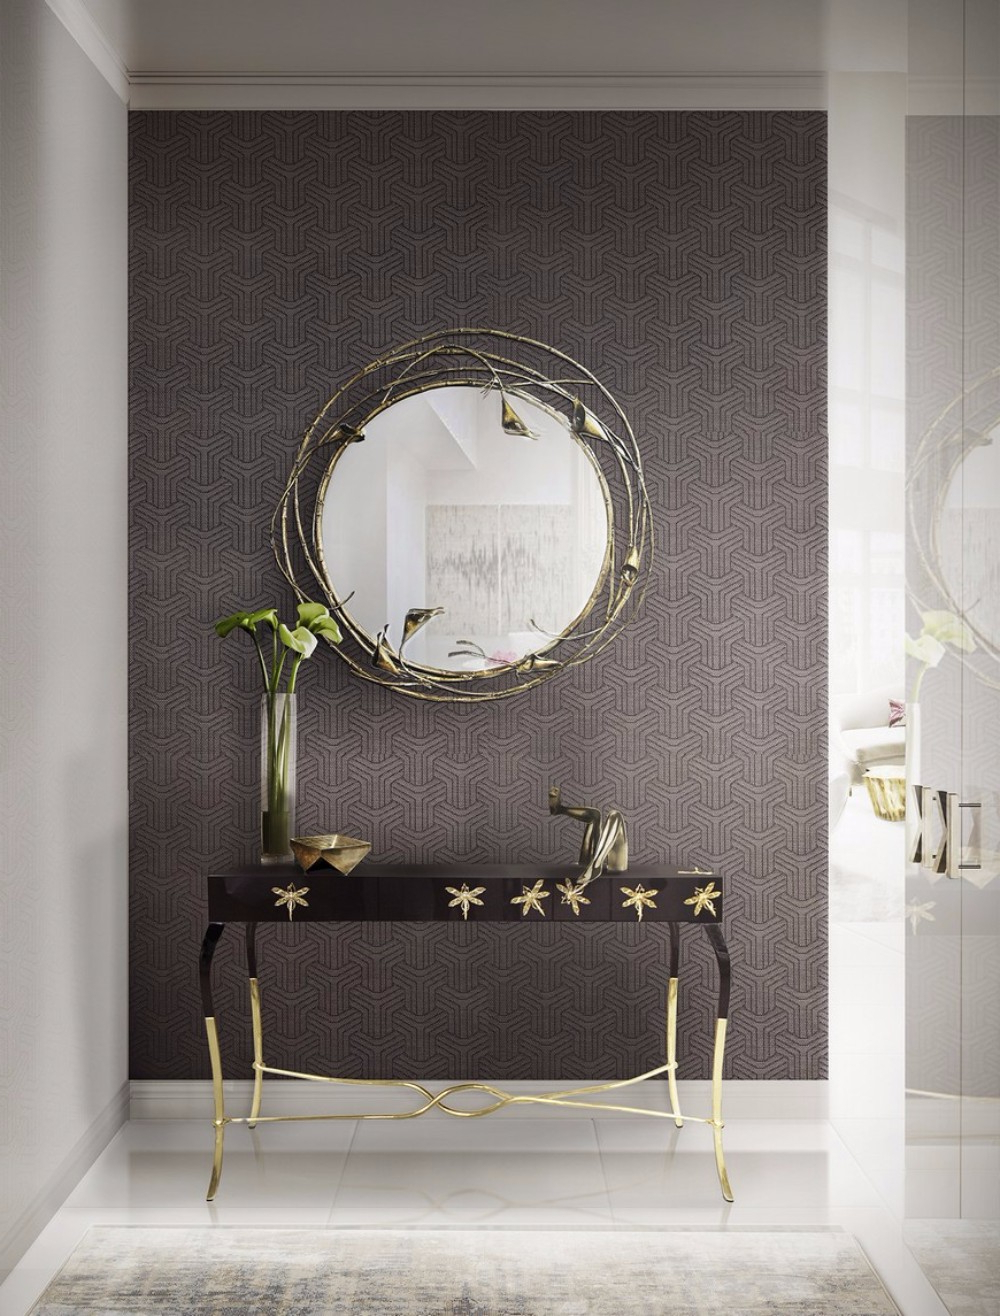 Soleil Wall Mirrors Within Popular 20 Exquisite Wall Mirror Designs For Your Living Room (View 20 of 20)